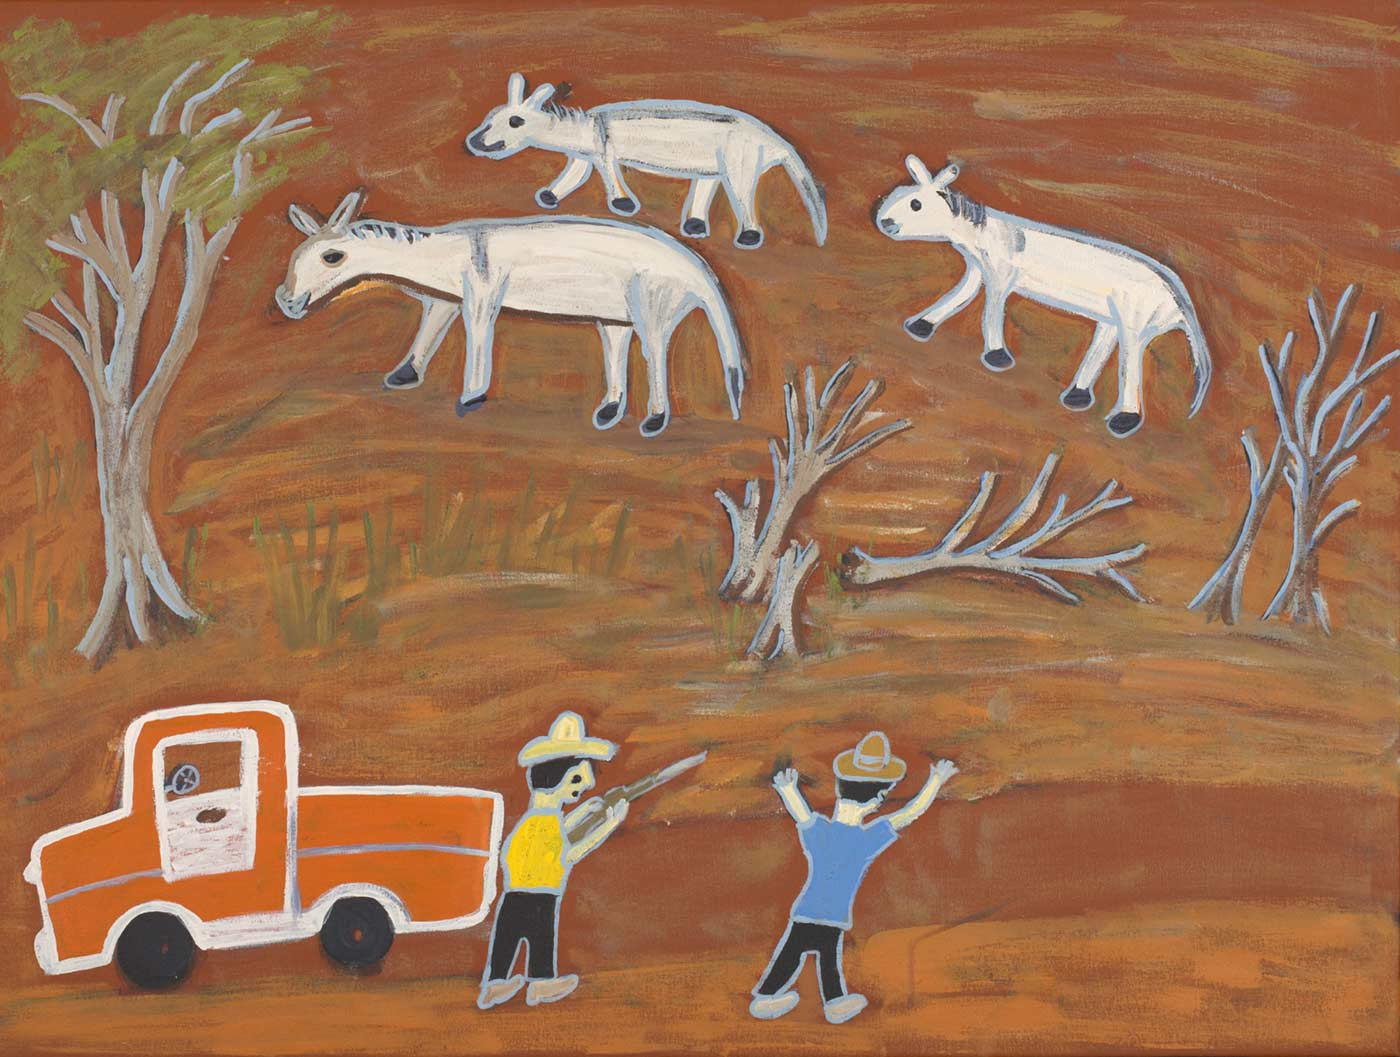 An acrylic painting on canvas showing two people, three donkeys and a vehicle. One of the people is aiming a firearm at the donkeys. - click to view larger image